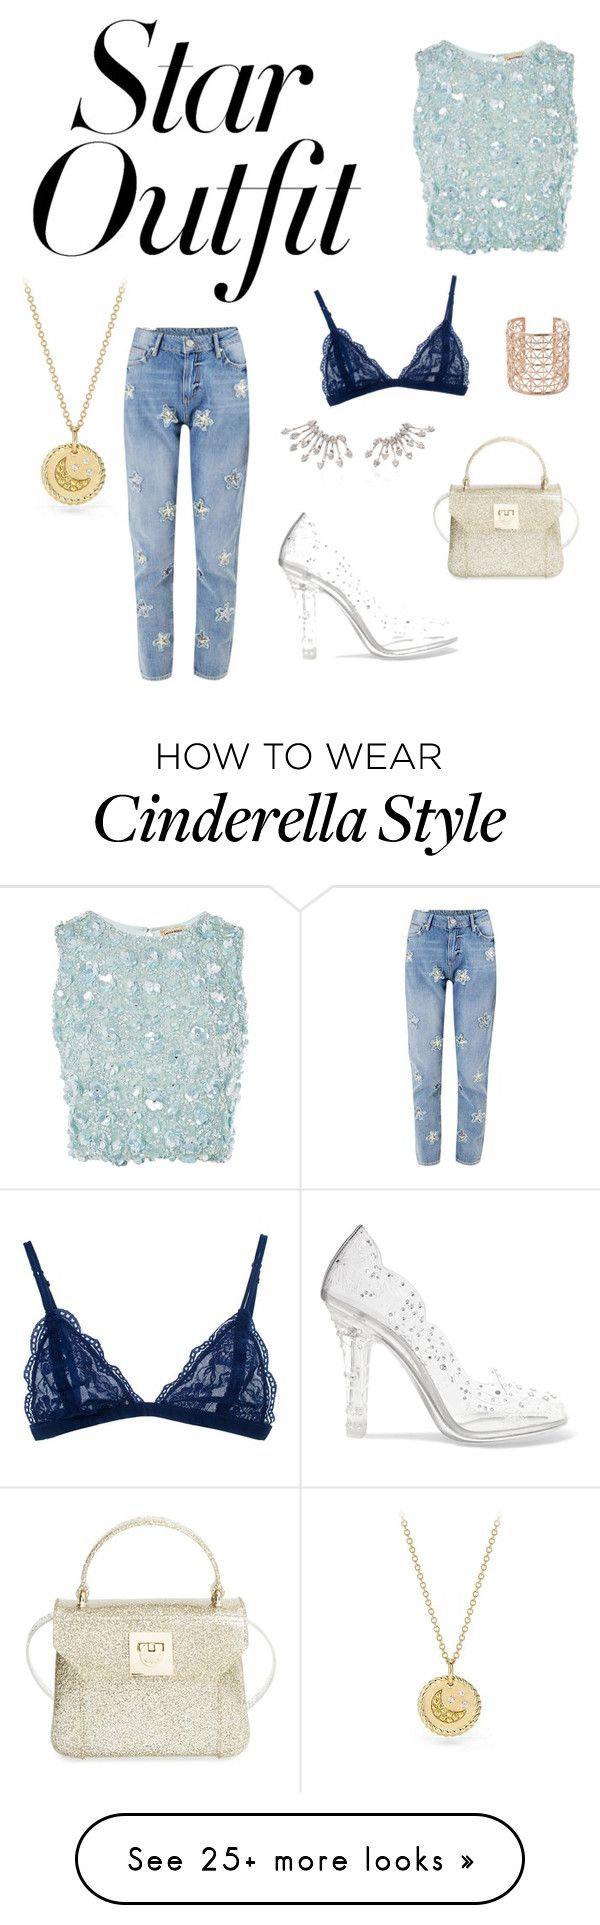 """""""Comfy glam"""" by sabine-obermoller on Polyvore featuring David Yurman, Zoe Karssen, Lace & Beads, Dolce&Gabbana, Furla, Co.Ro and StarOutfits"""